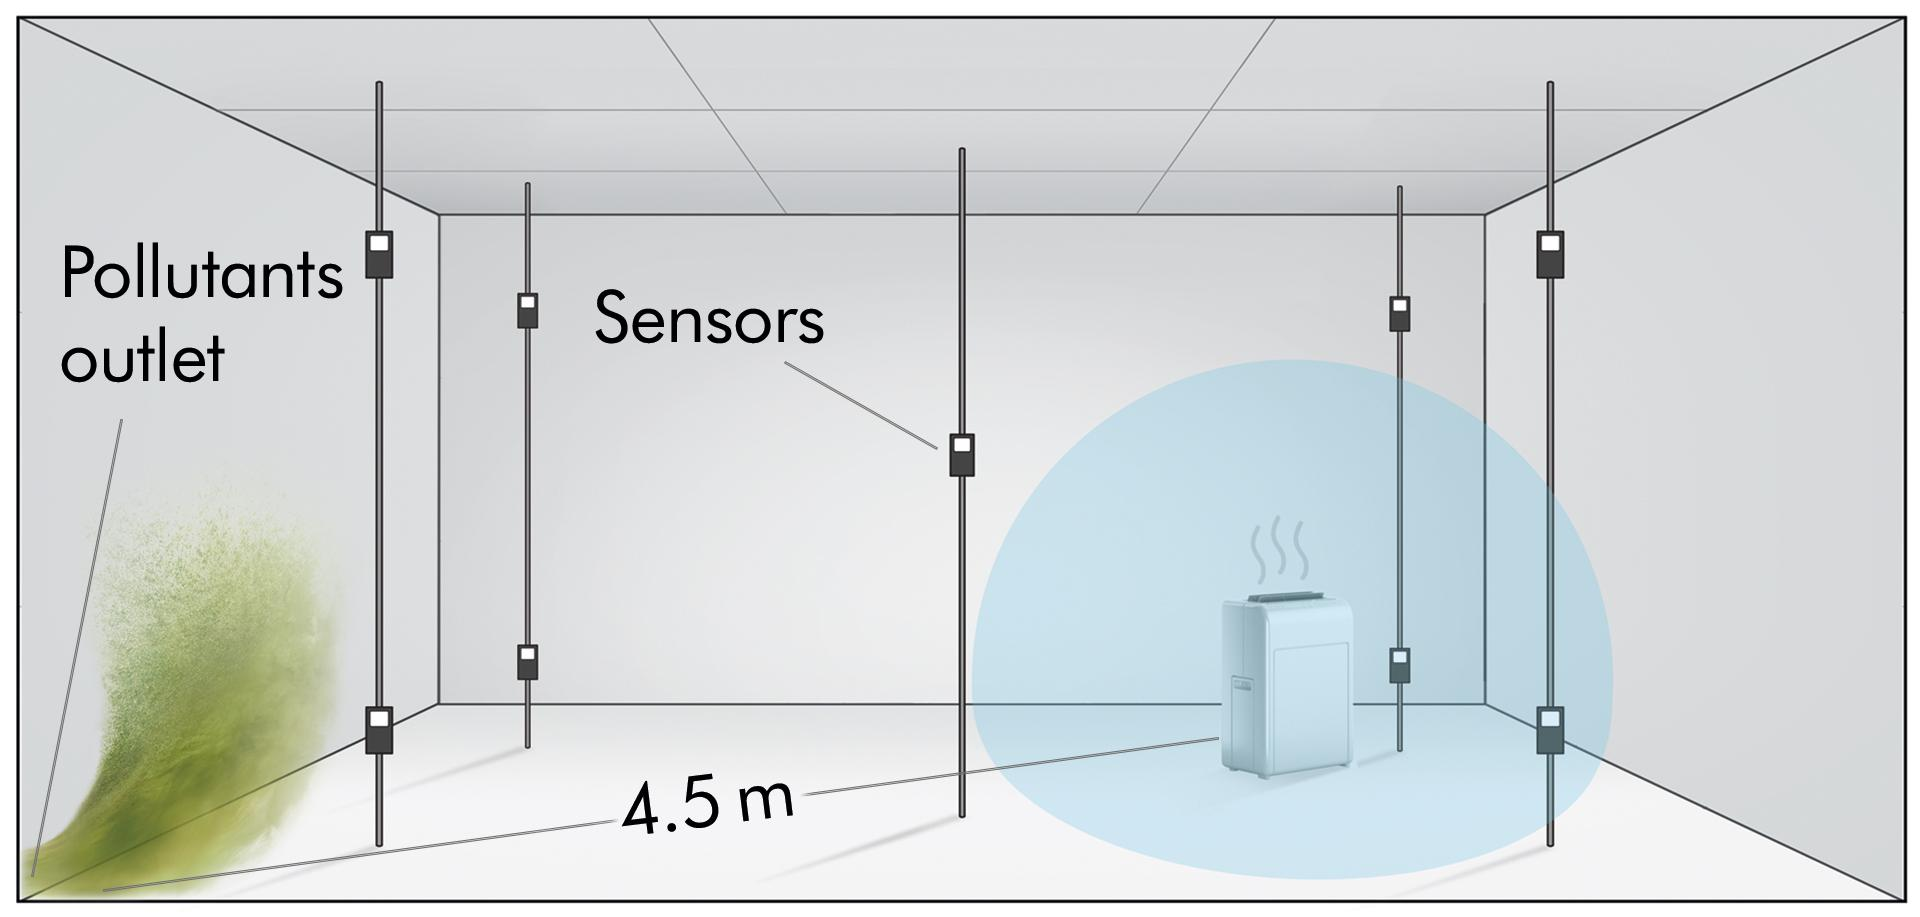 Without powerful airflow and precise real-time monitor, the air is still not purified in some areas of the room.